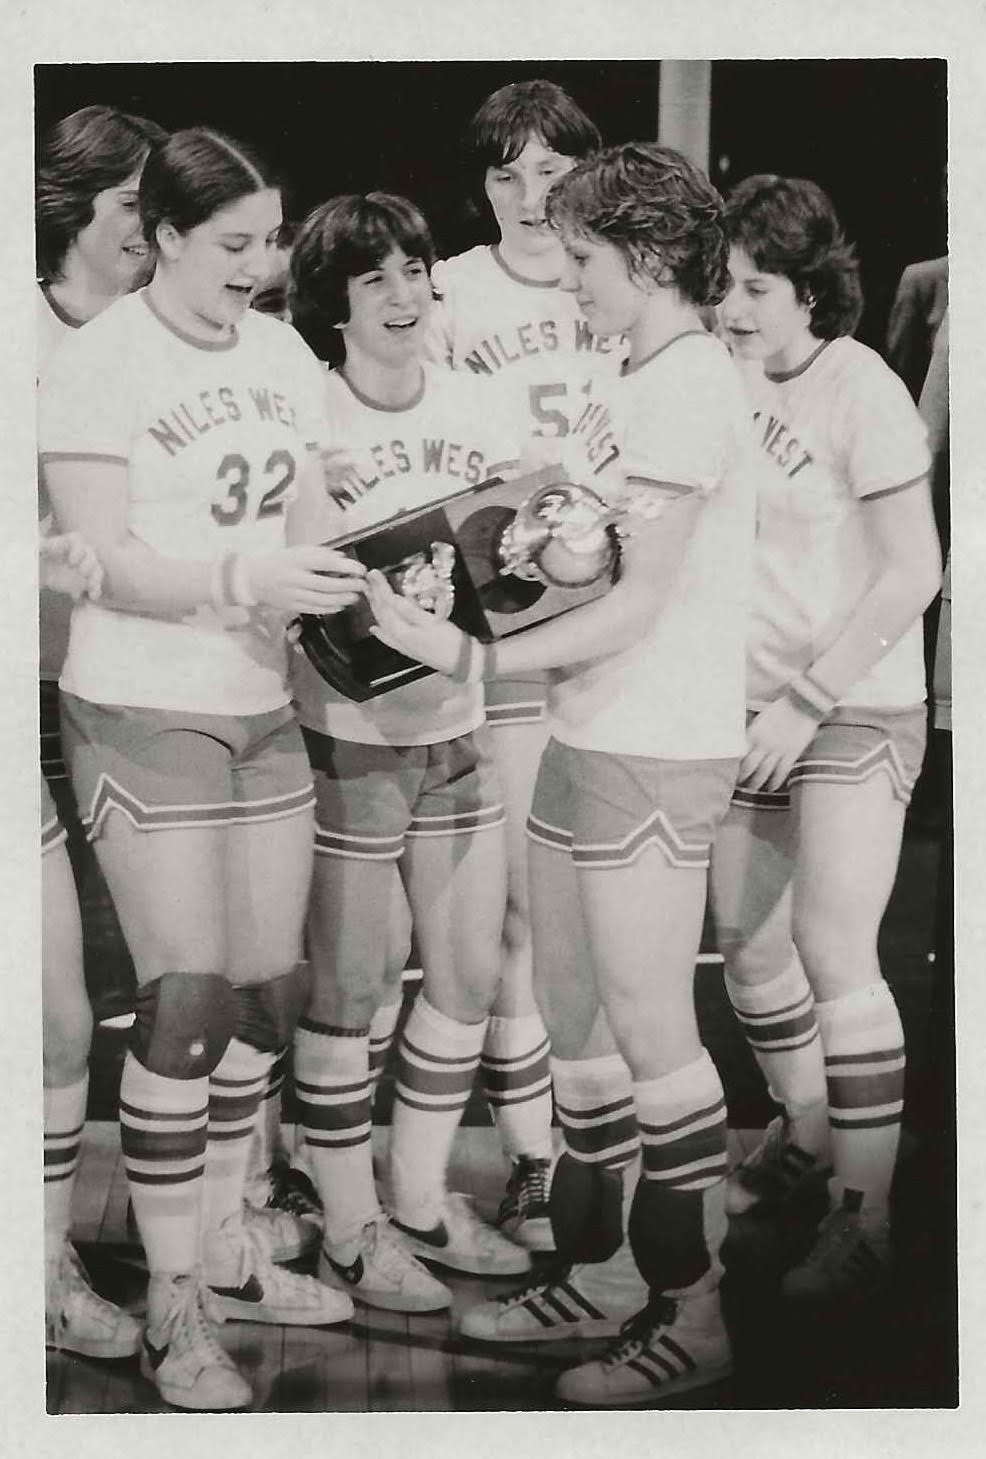 The Illinois state champion 1979 Niles West women's basketball team.